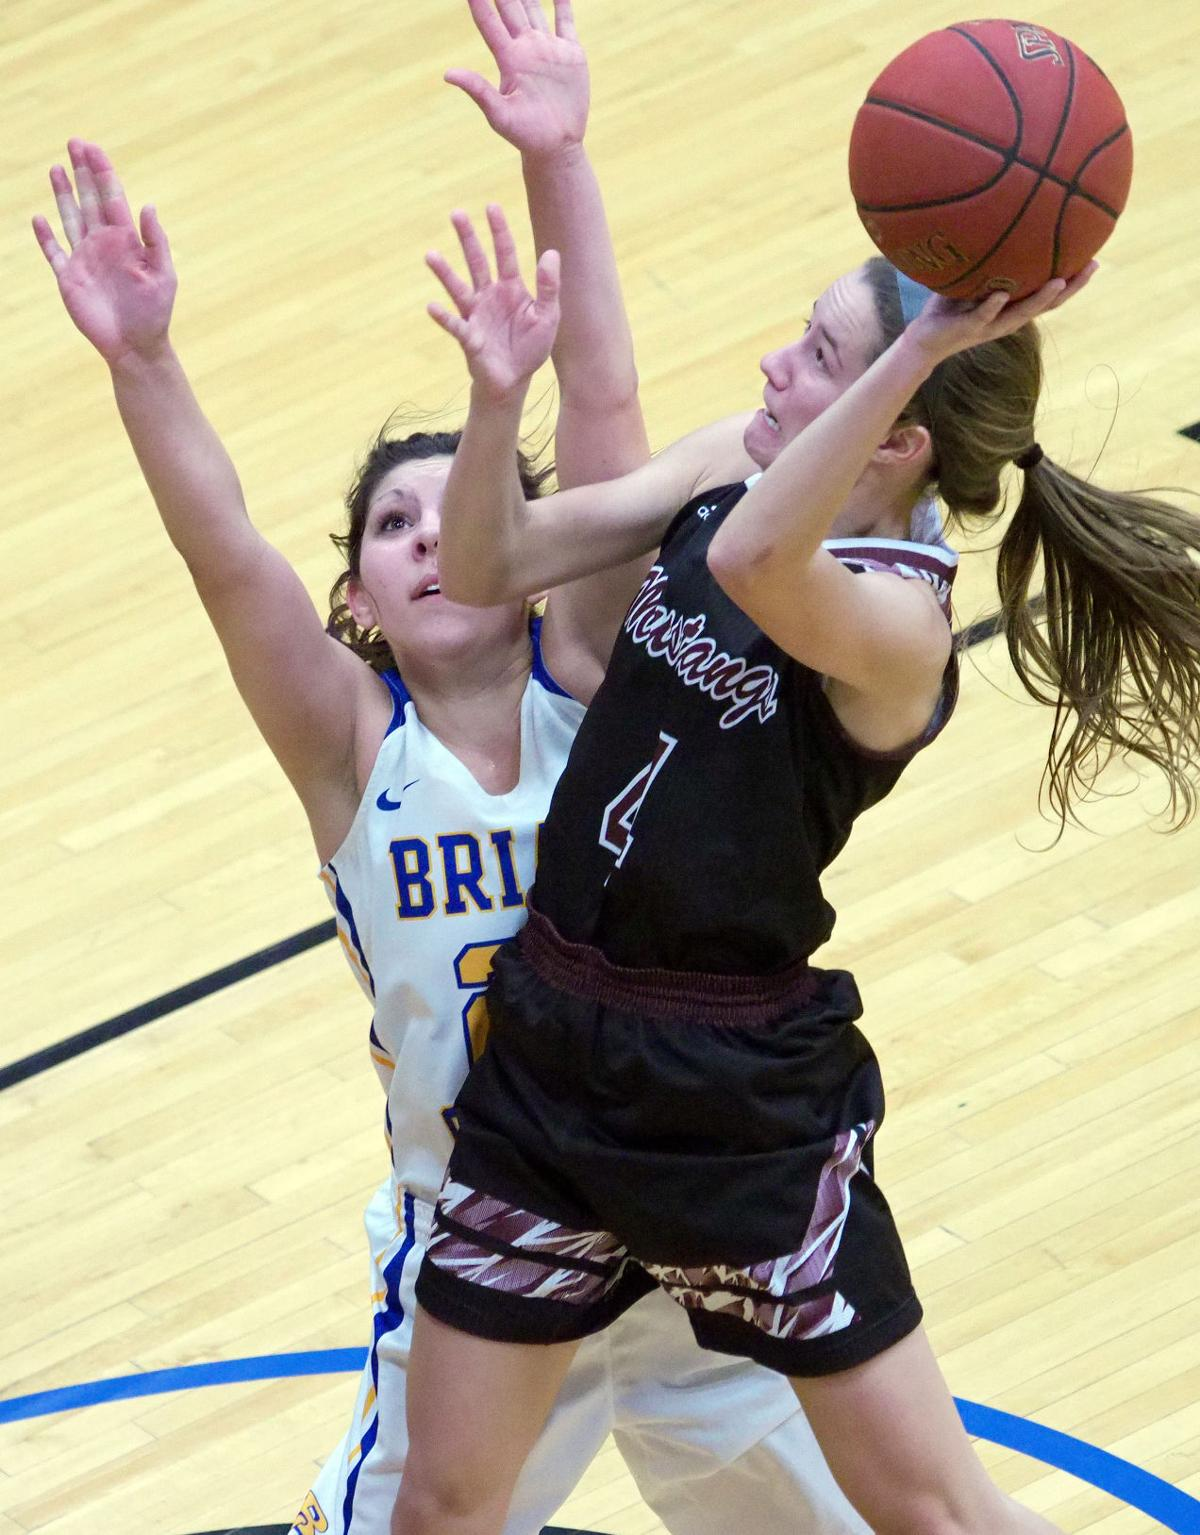 Morningside at Briar Cliff basketball